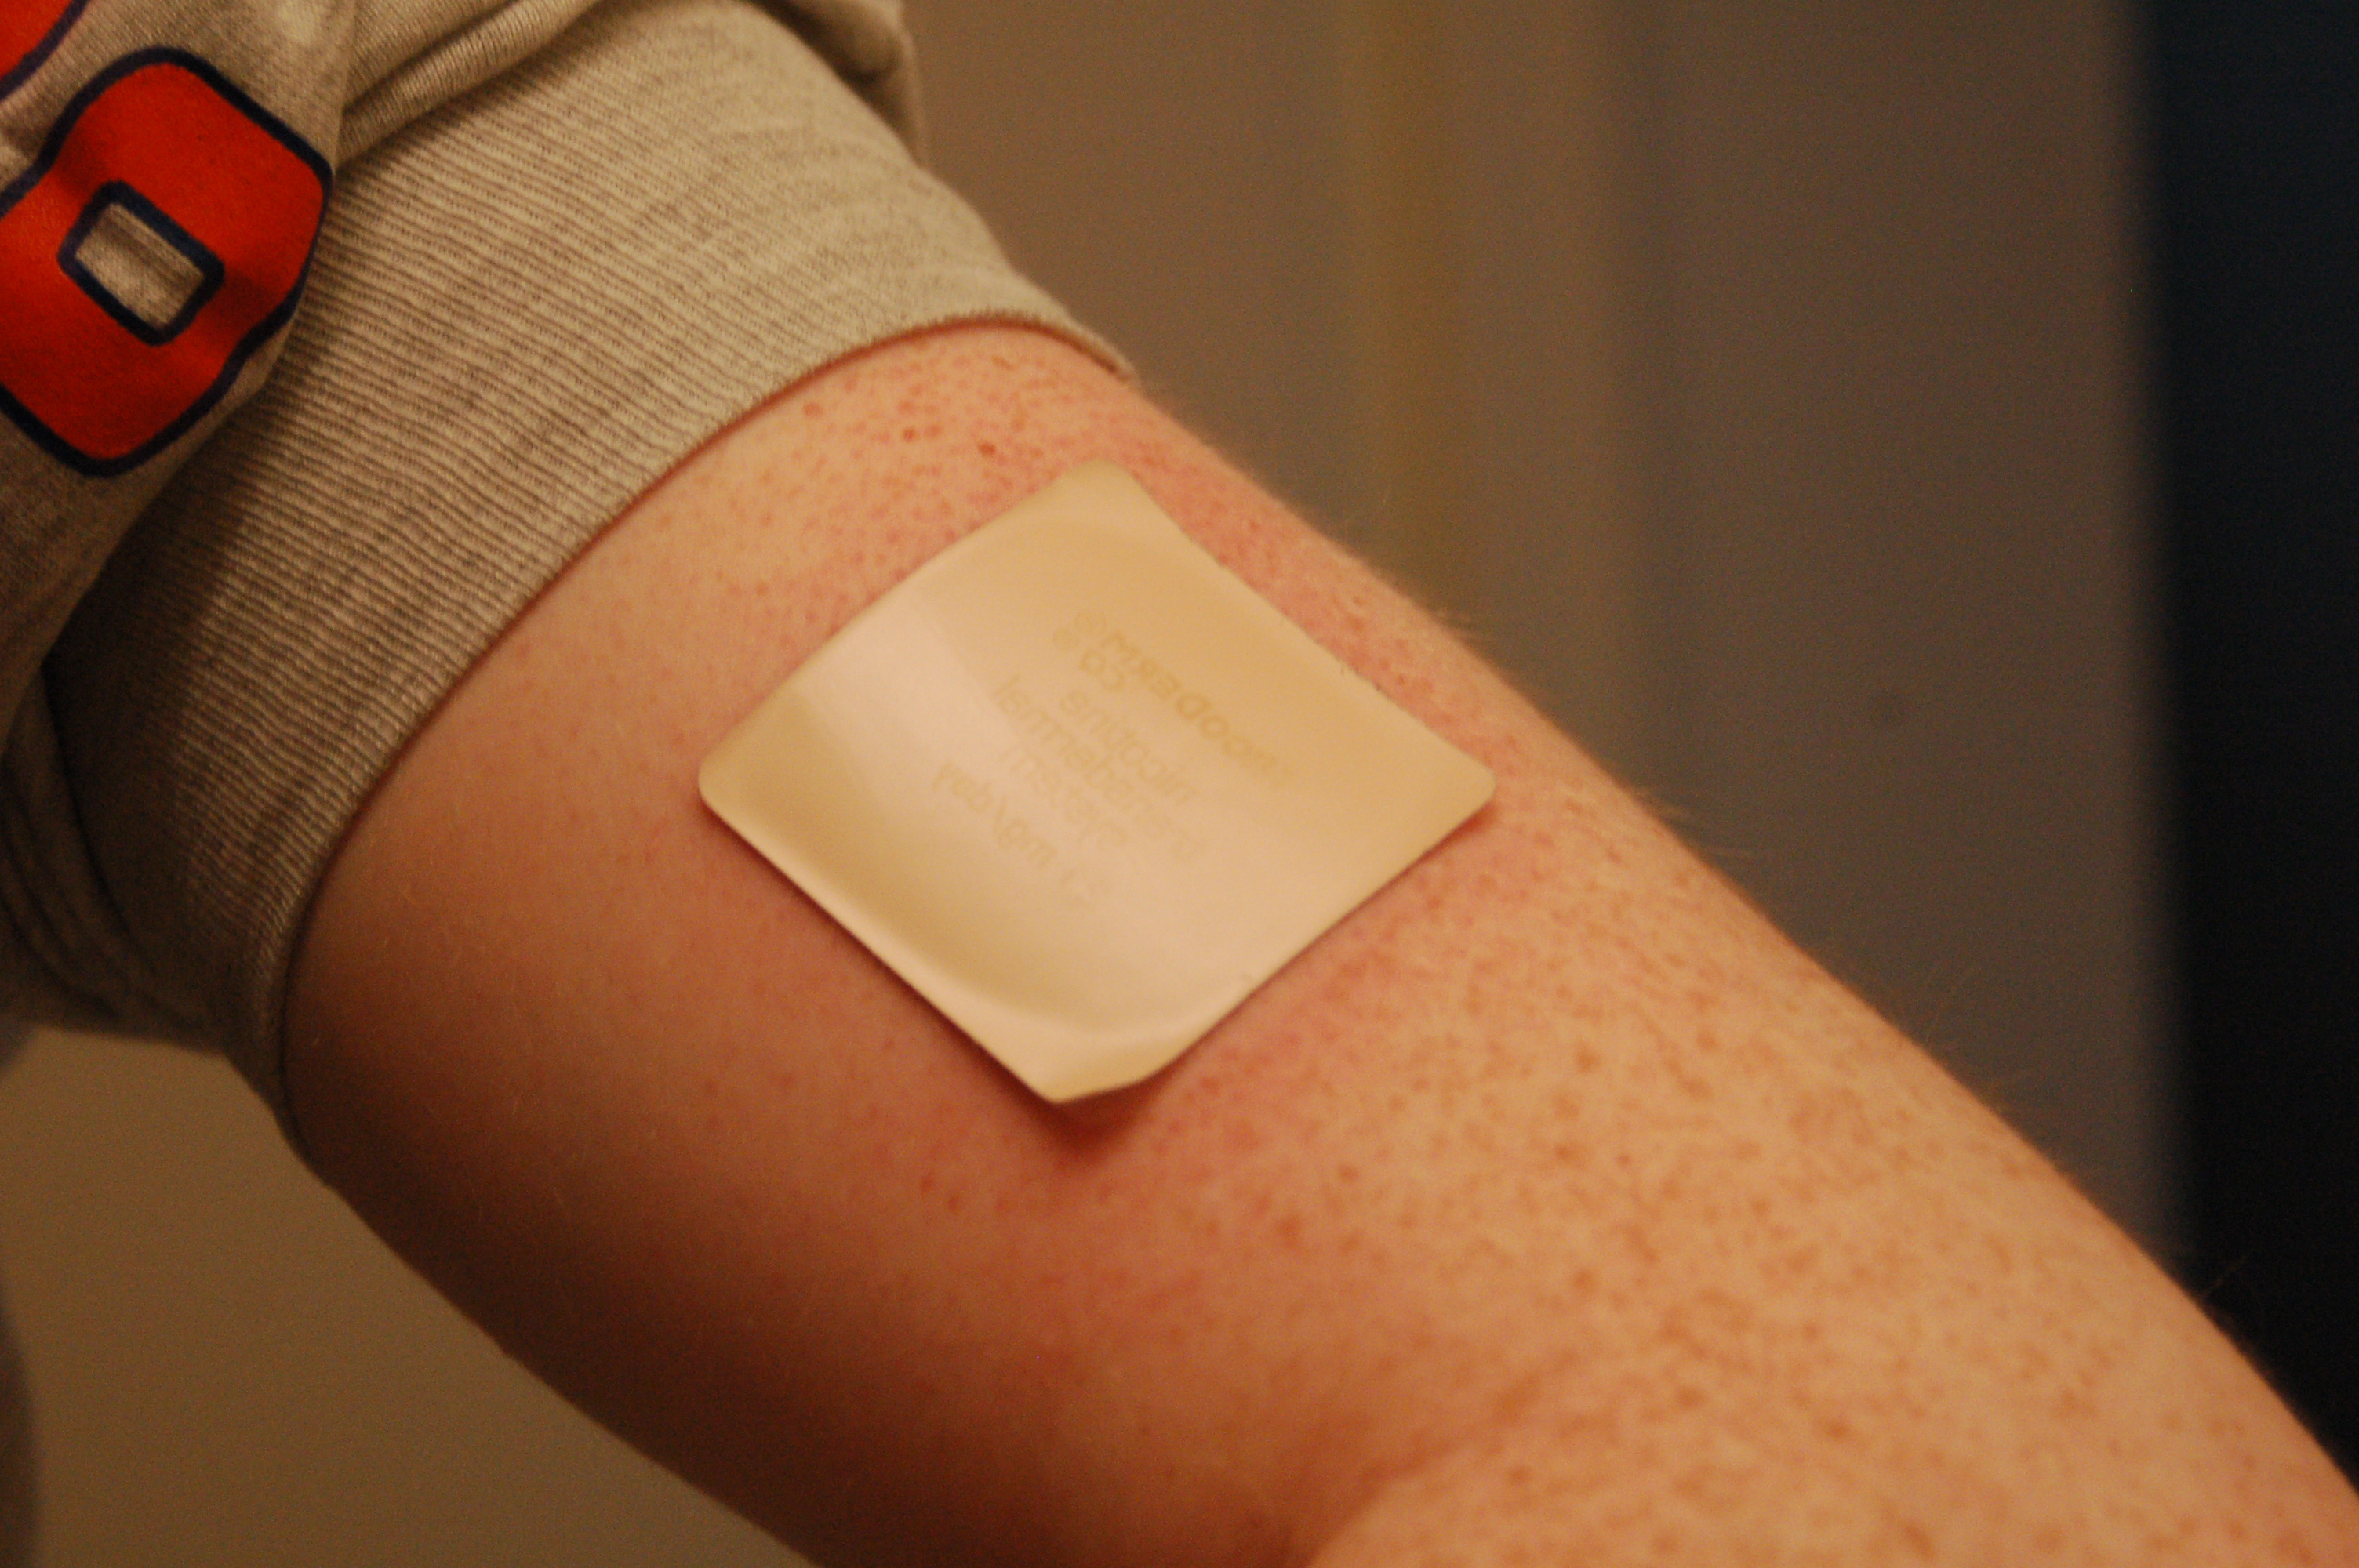 pain patch for athletes